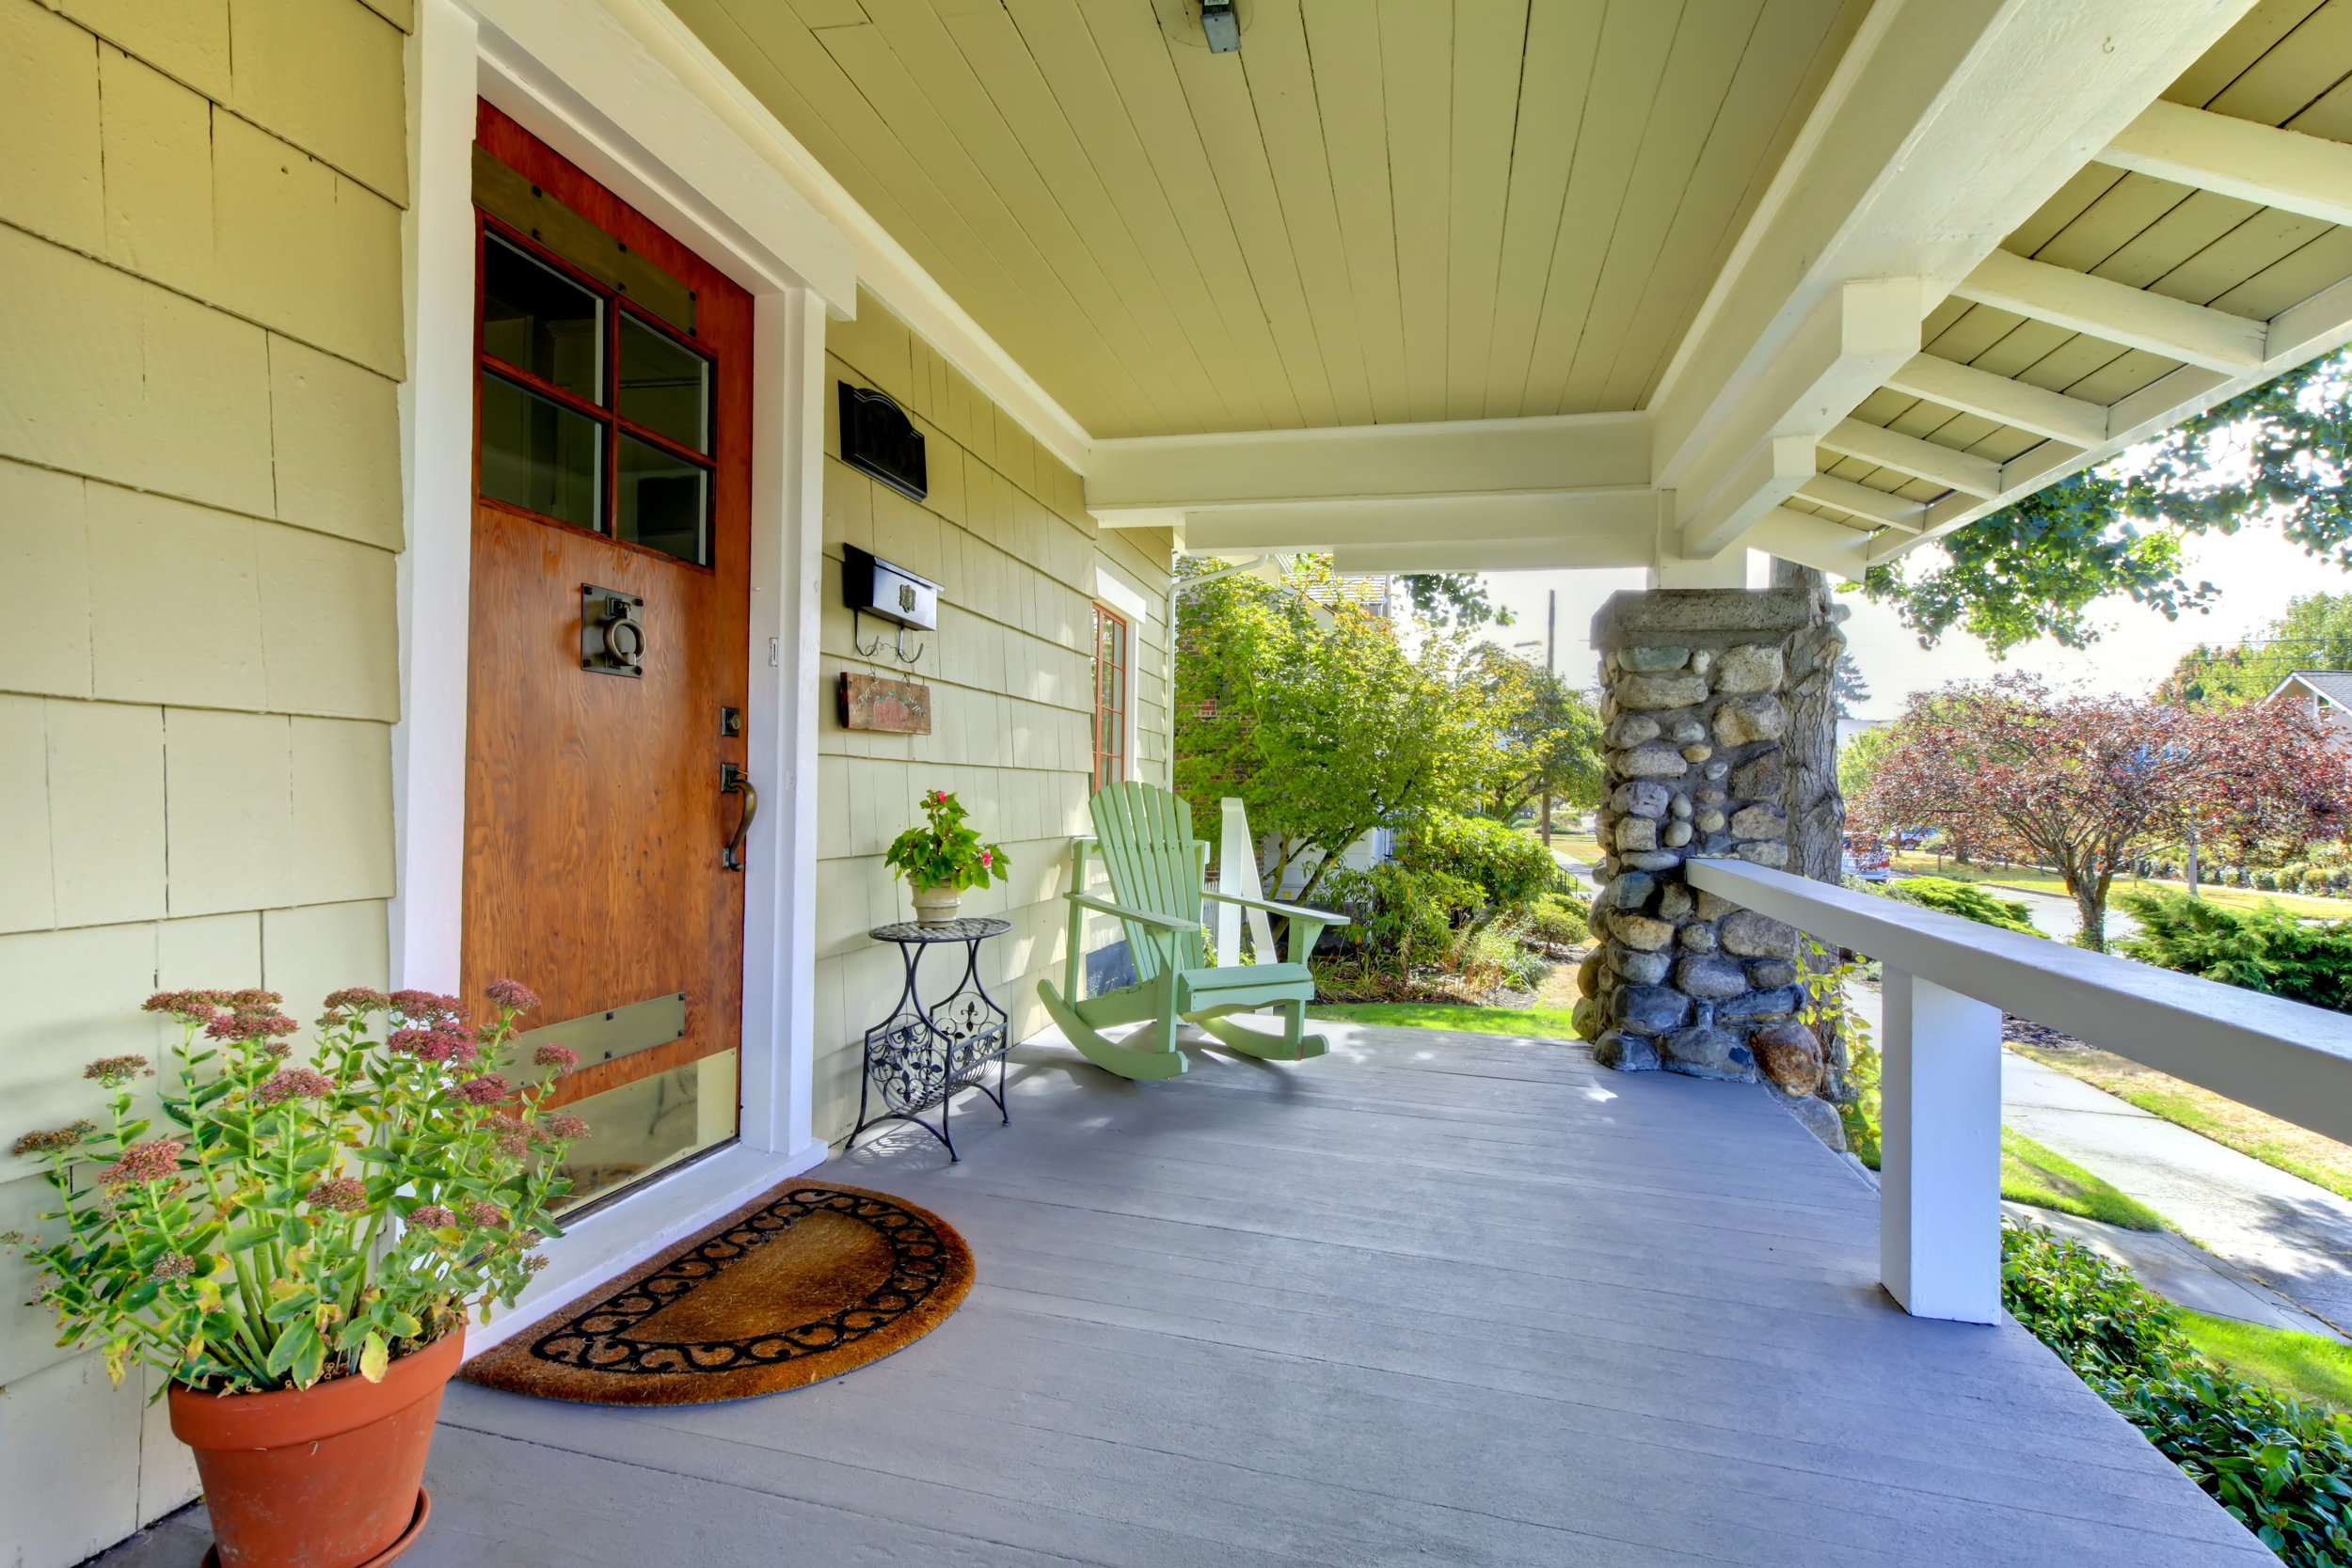 Covered front porch of theold craftsman style home.